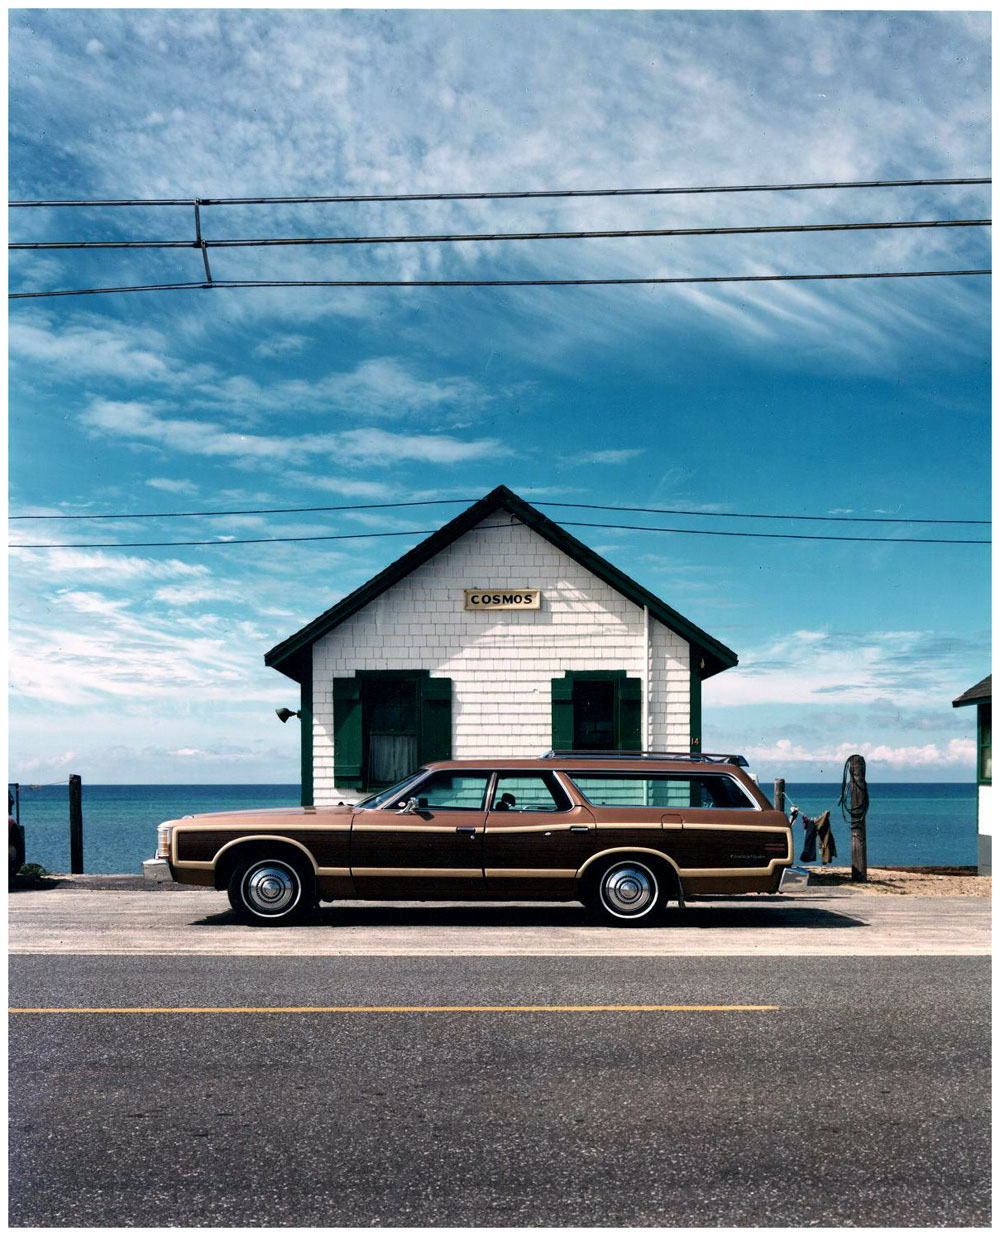 Exhibition: 'Joel Meyerowitz Retrospective' At NRW-Forum